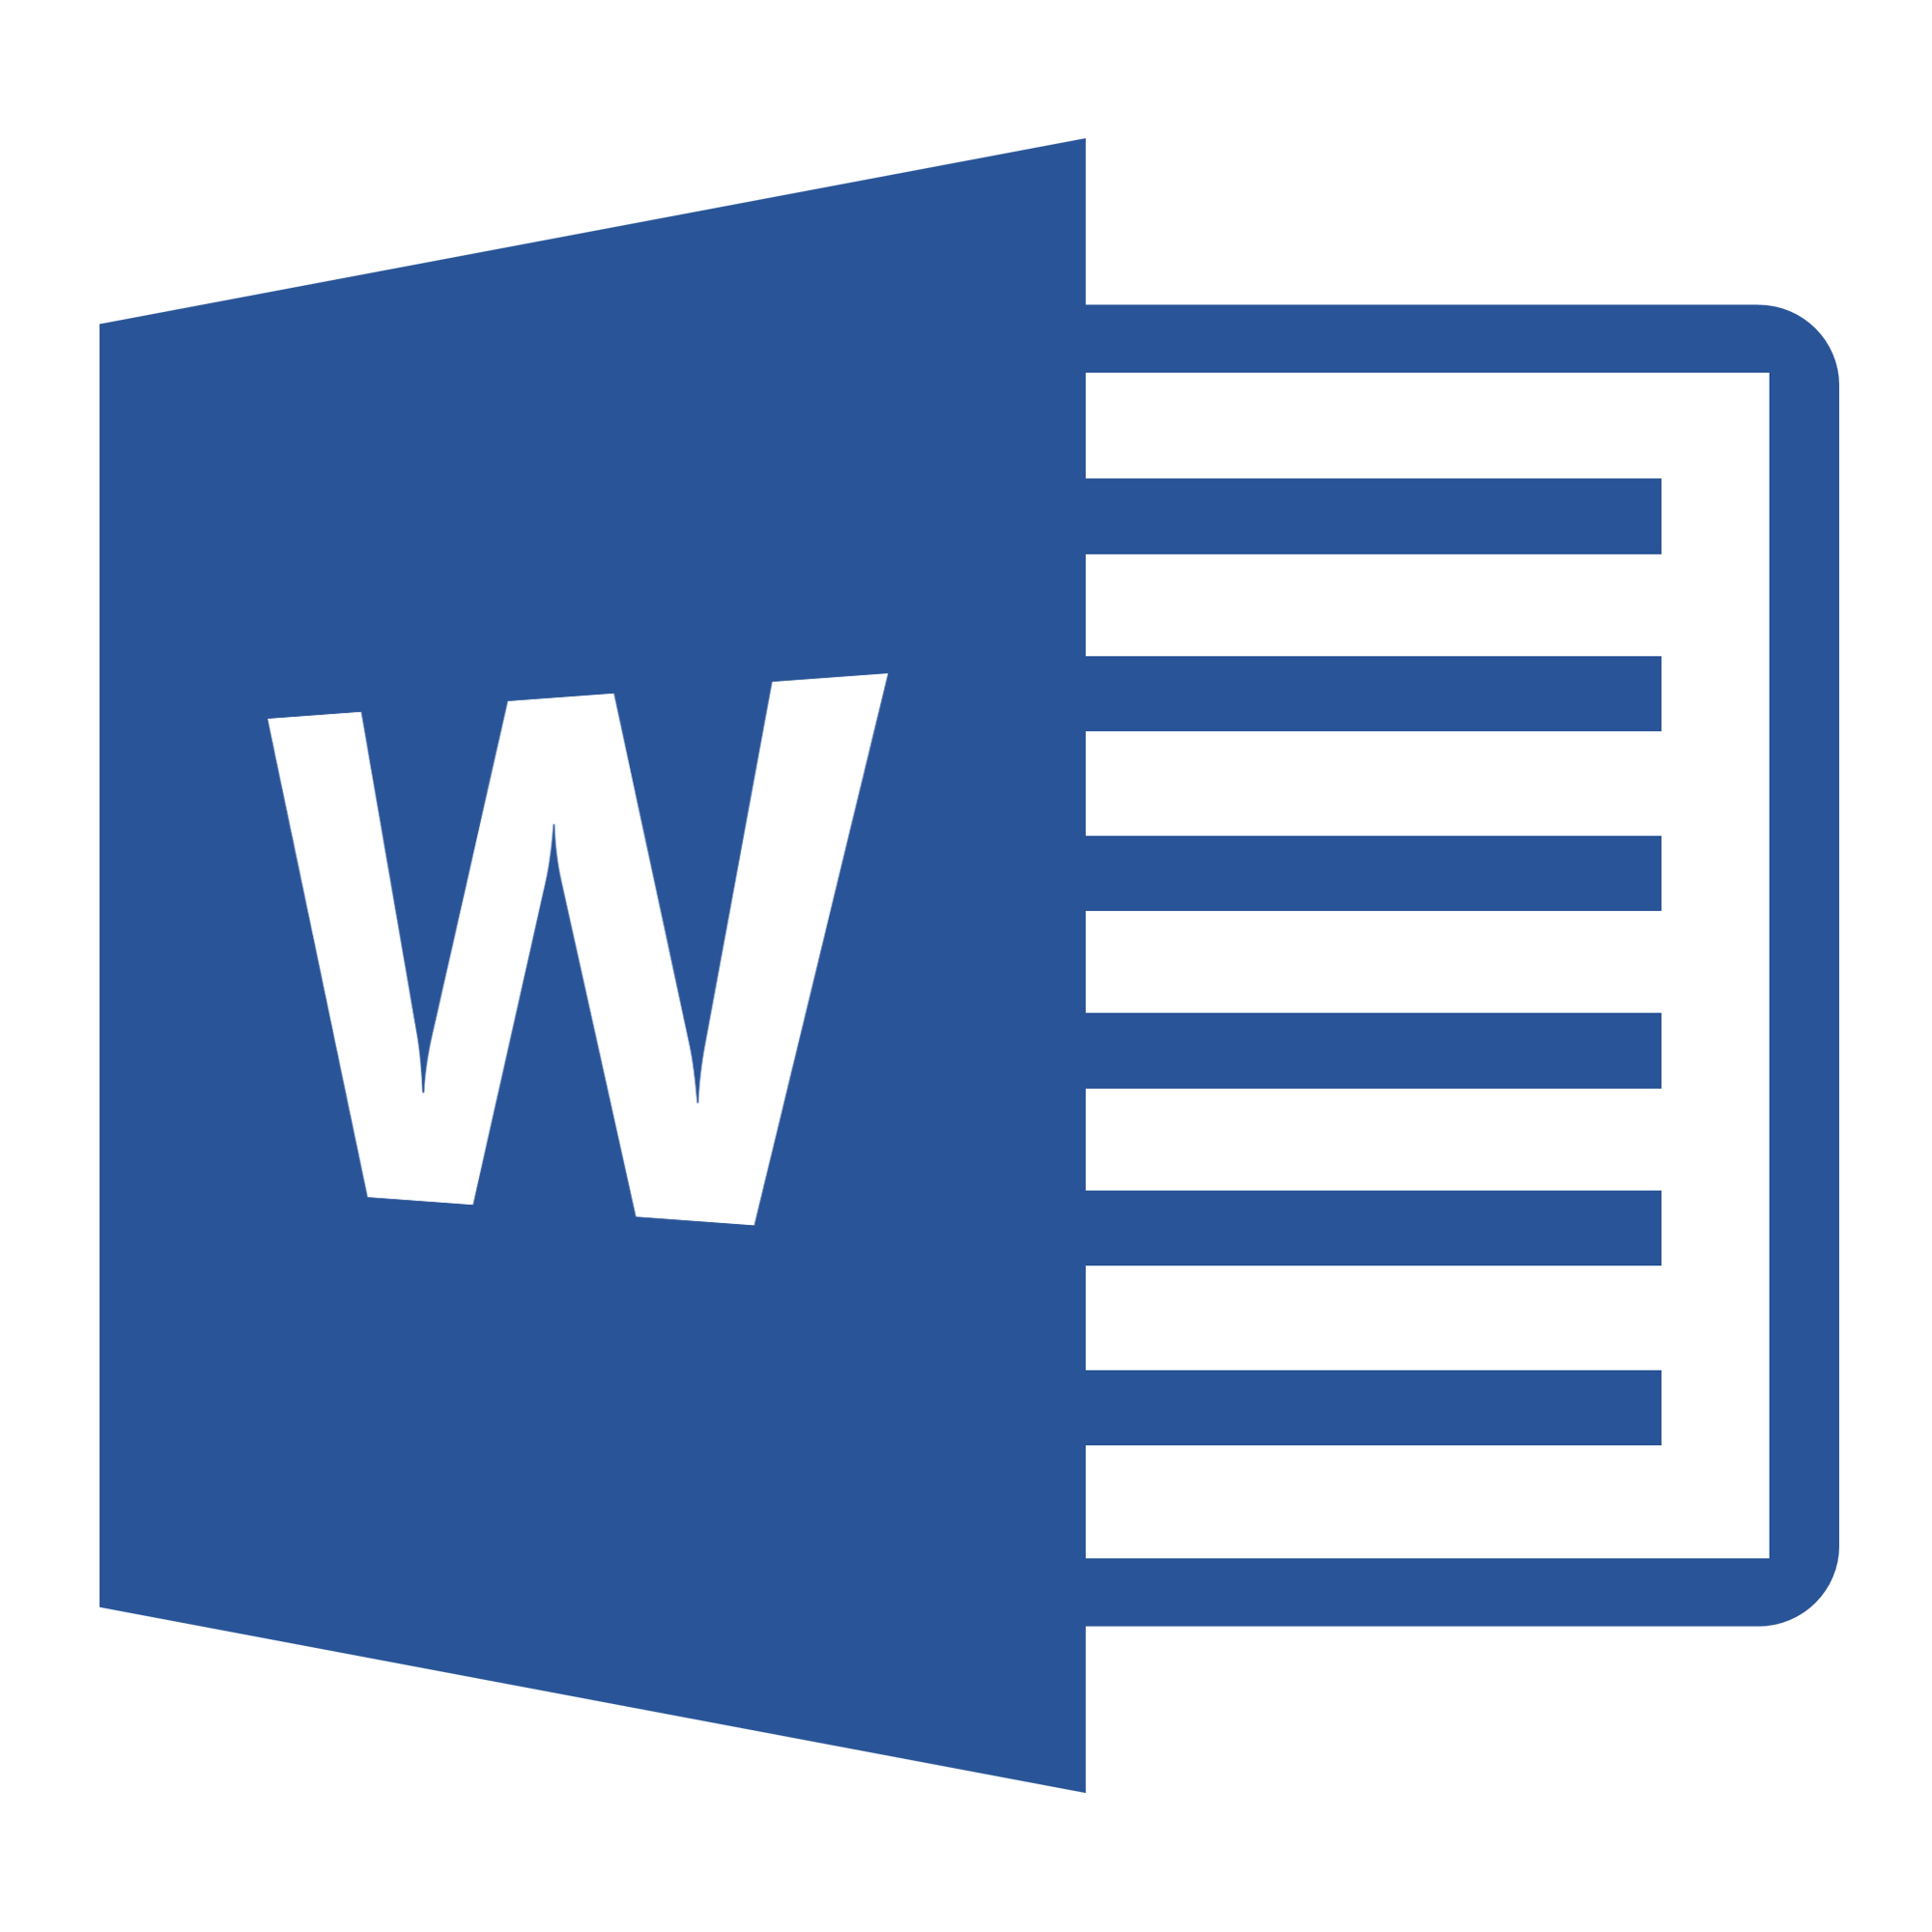 15 Microsoft Word Icon Images